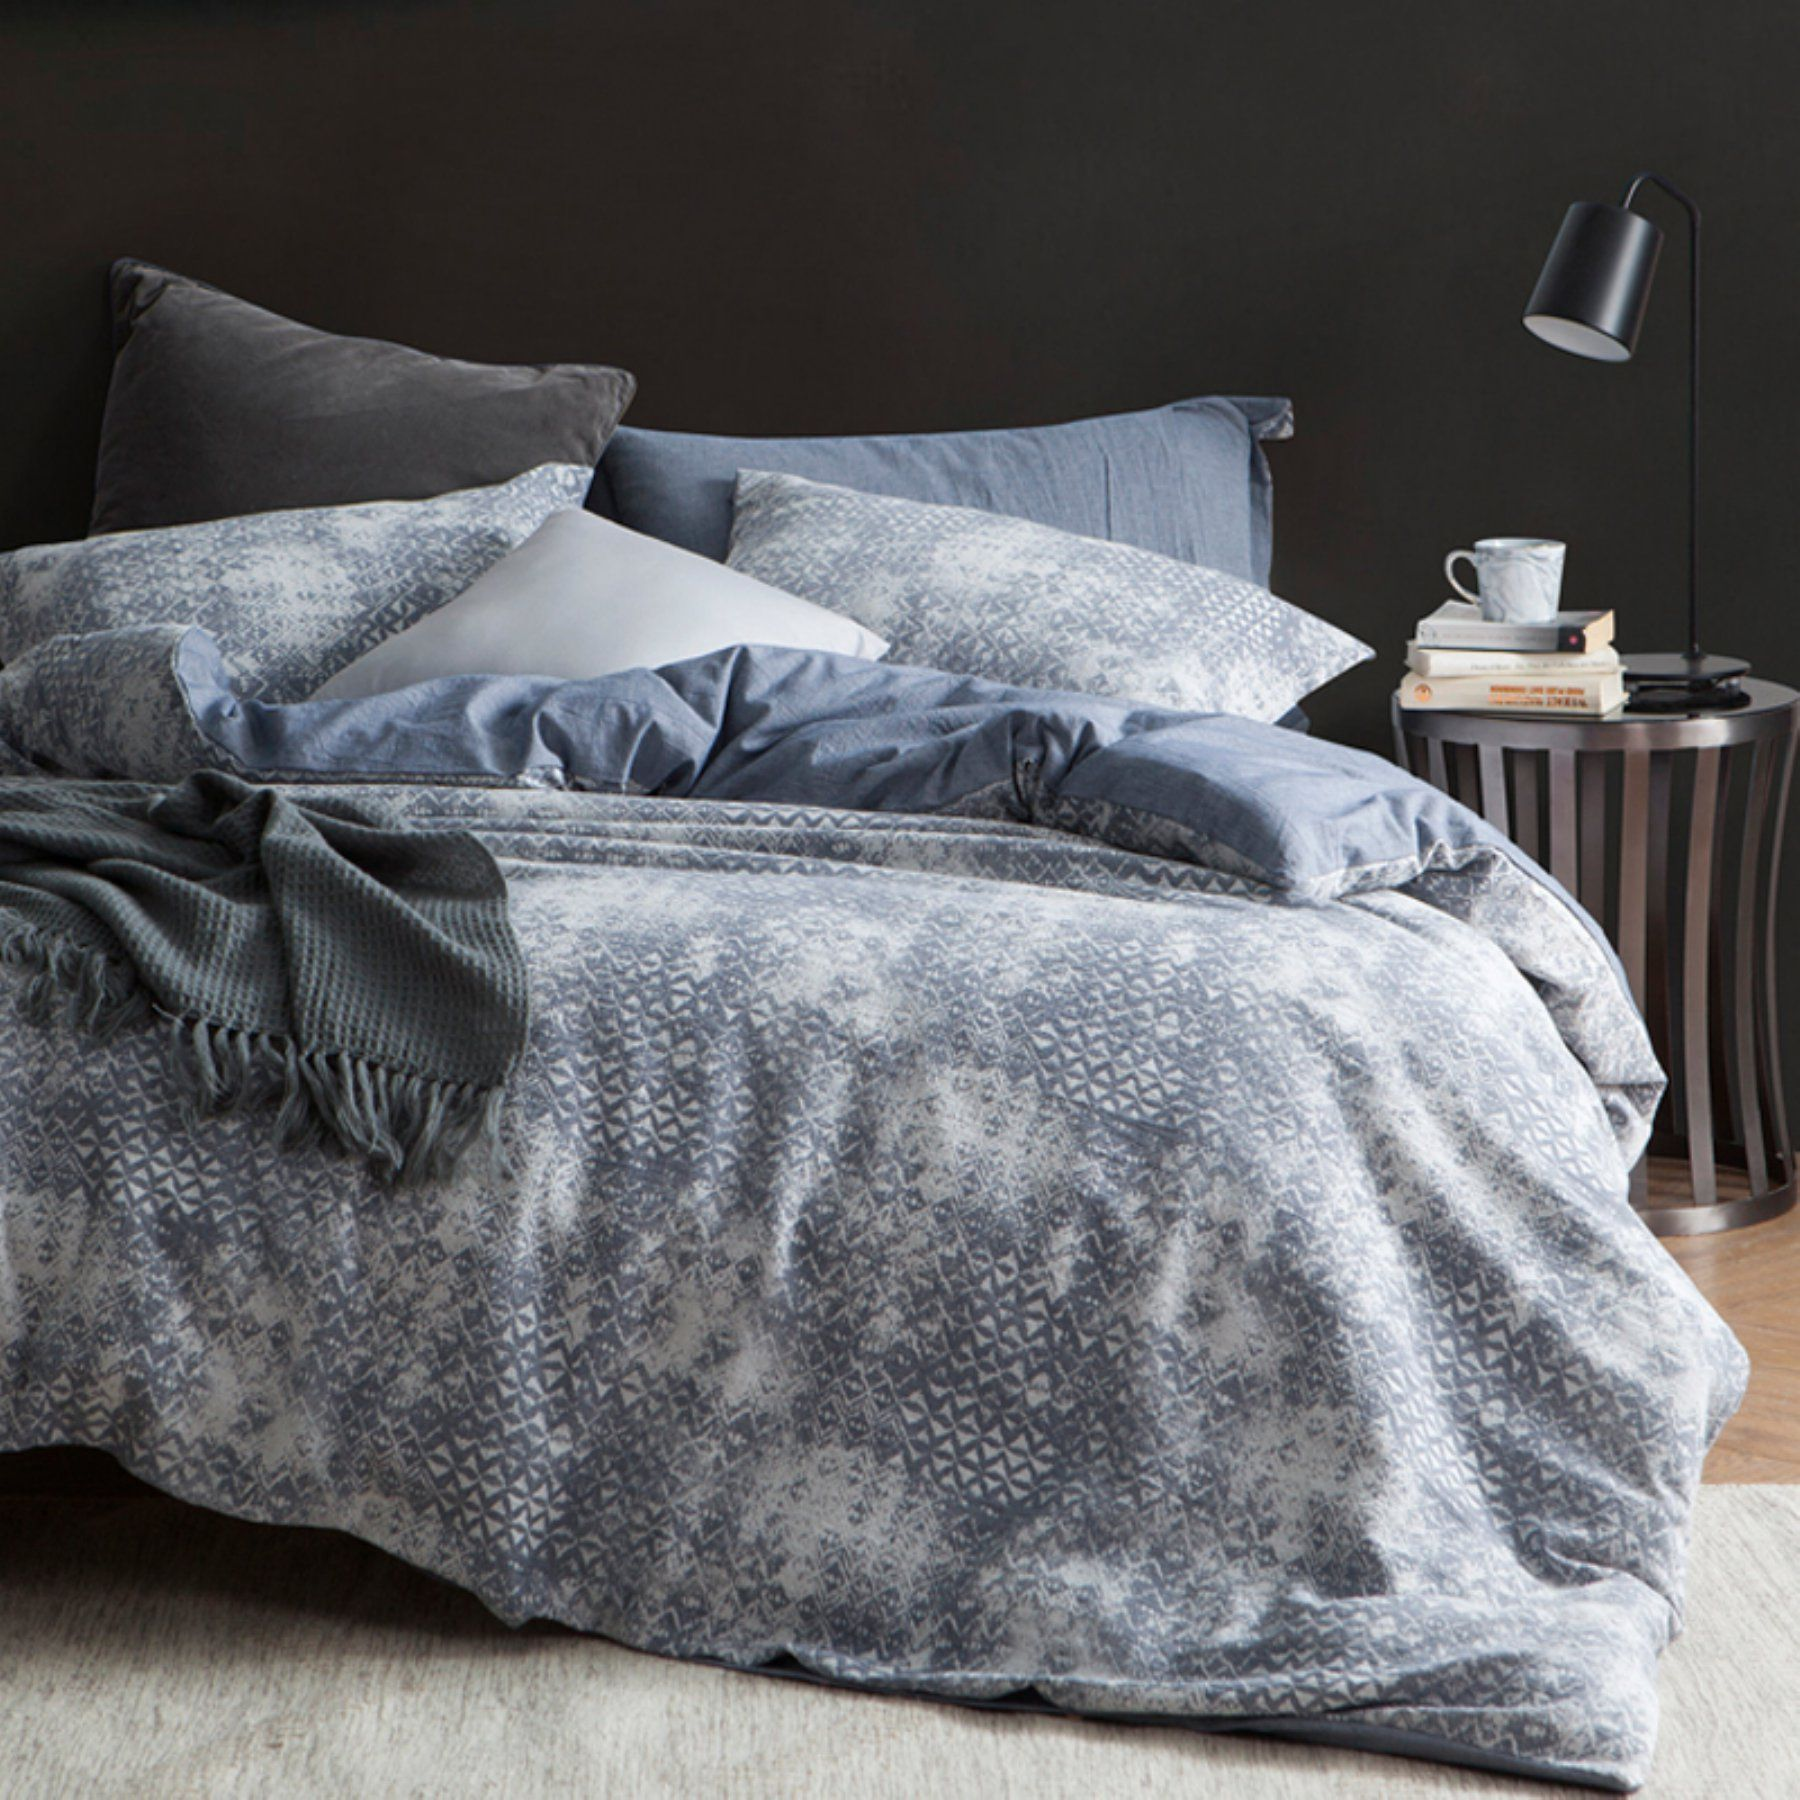 Crate And Barrel Comforters